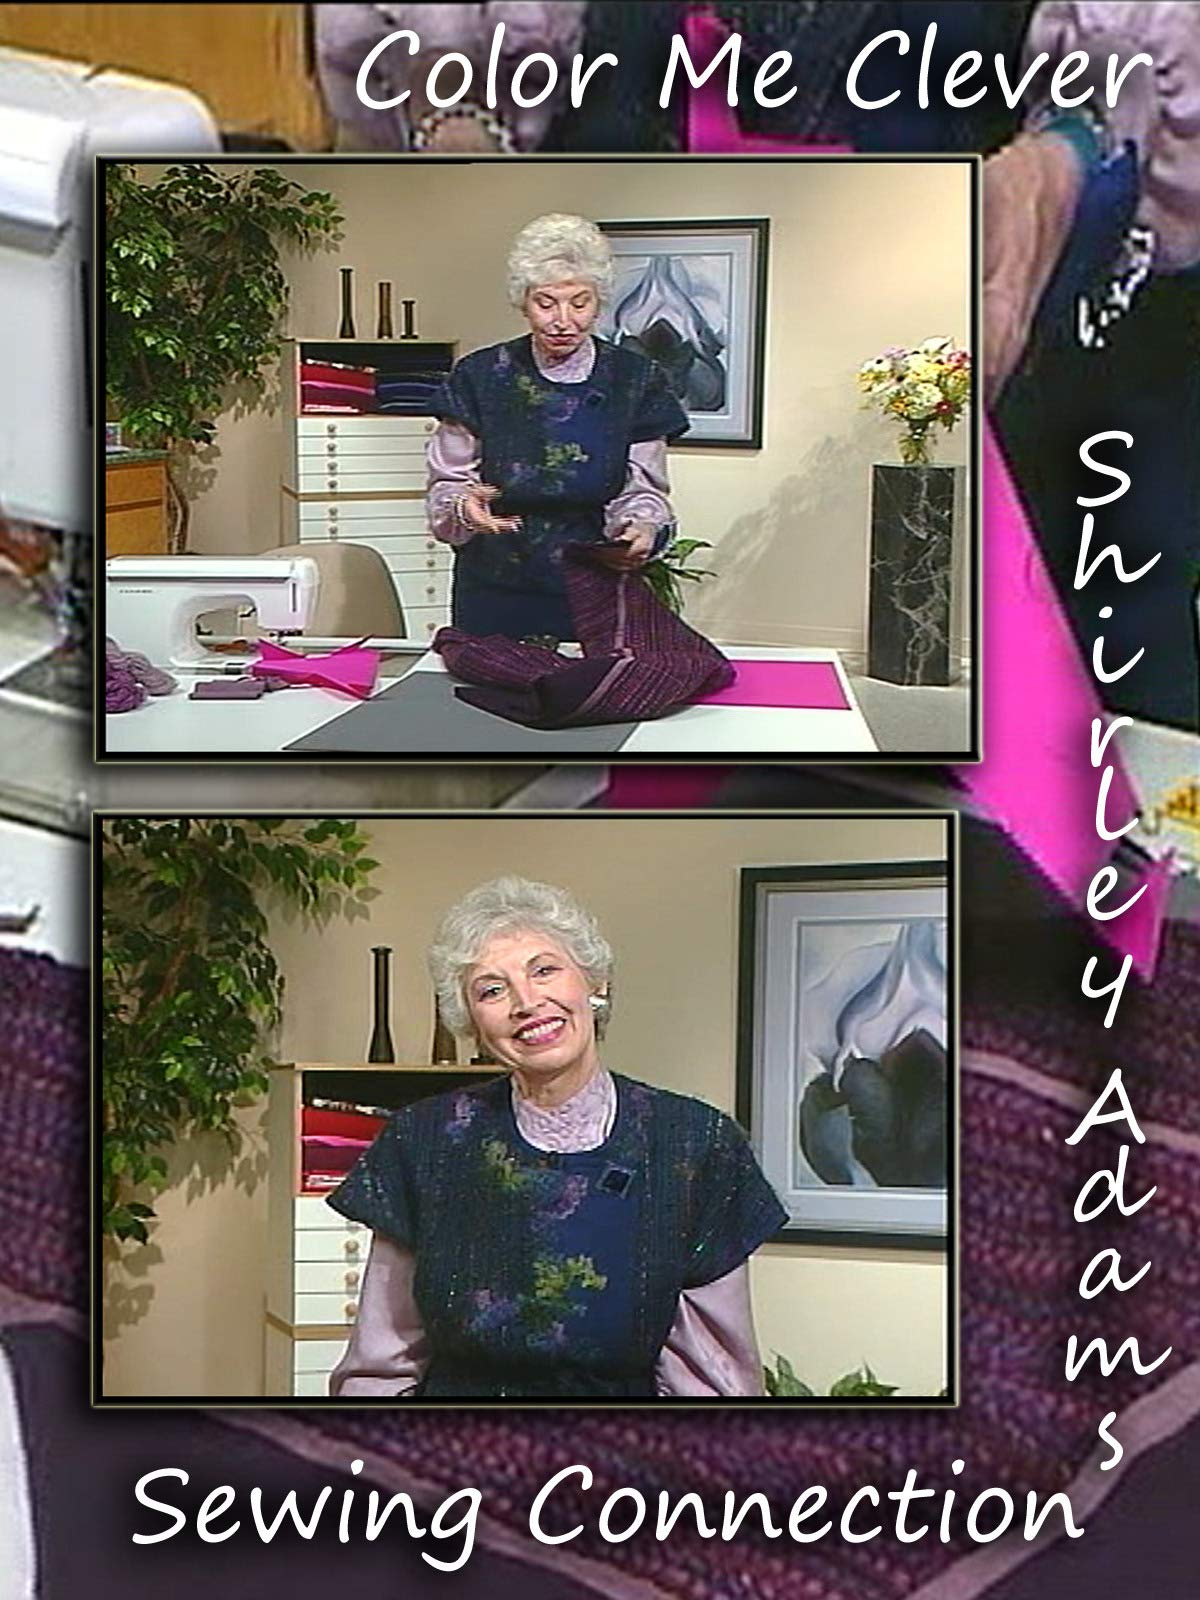 Color Me Clever with Shirley Adams Sewing Connection